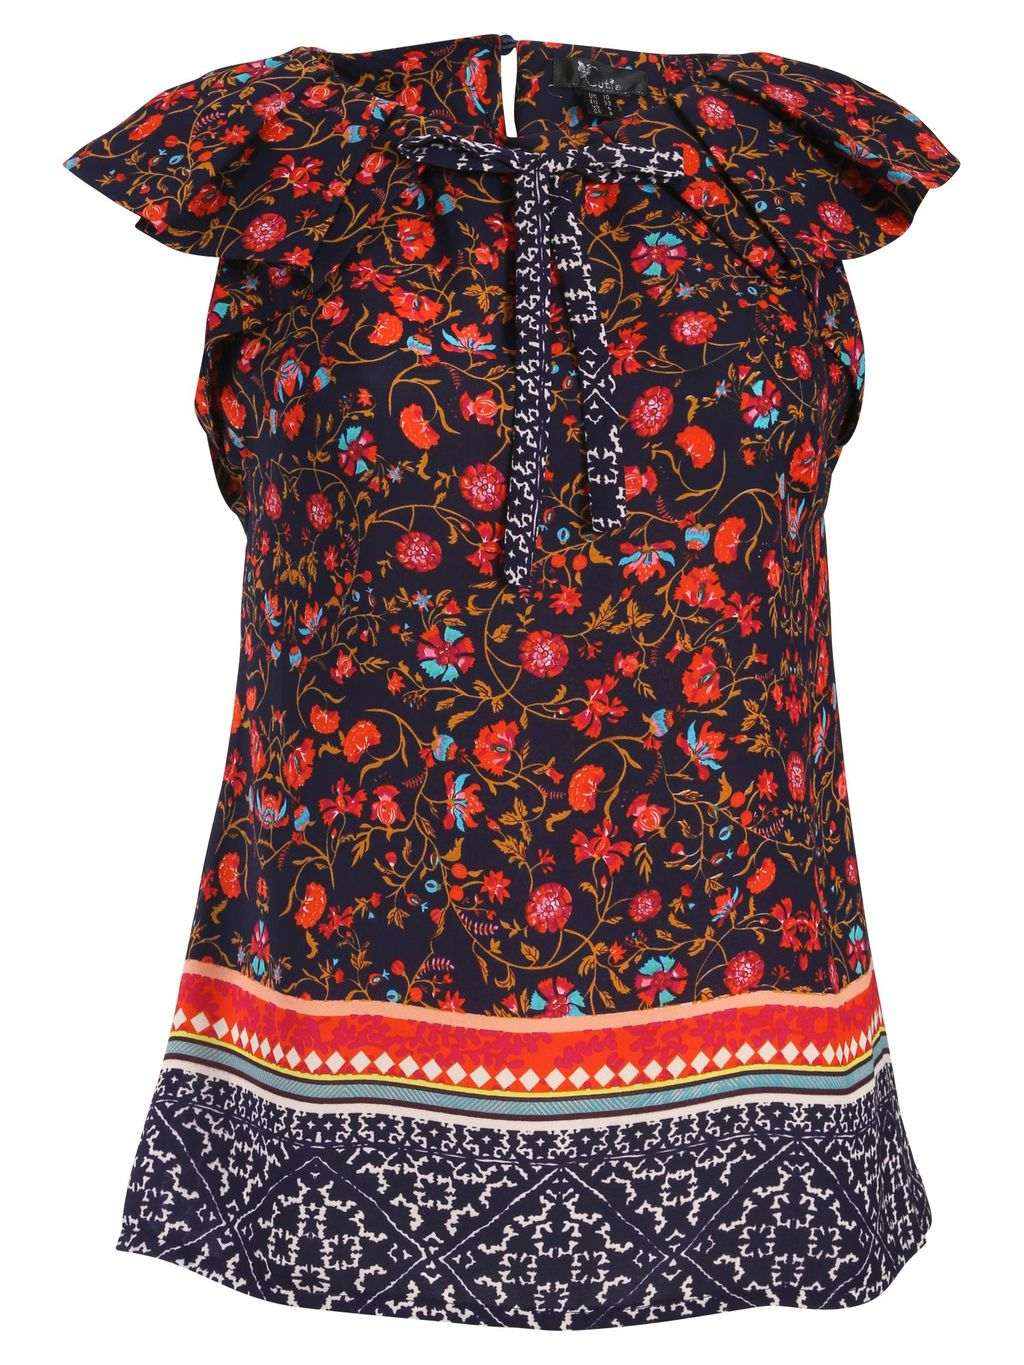 Sleeveless Floral Top, Navy - neckline: round neck; sleeve style: capped; bust detail: added detail/embellishment at bust; secondary colour: true red; predominant colour: navy; occasions: casual; length: standard; style: top; fibres: polyester/polyamide - 100%; fit: straight cut; sleeve length: short sleeve; pattern type: fabric; pattern: patterned/print; texture group: other - light to midweight; trends: artesanal details; season: a/w 2014; pattern size: big & busy (top)